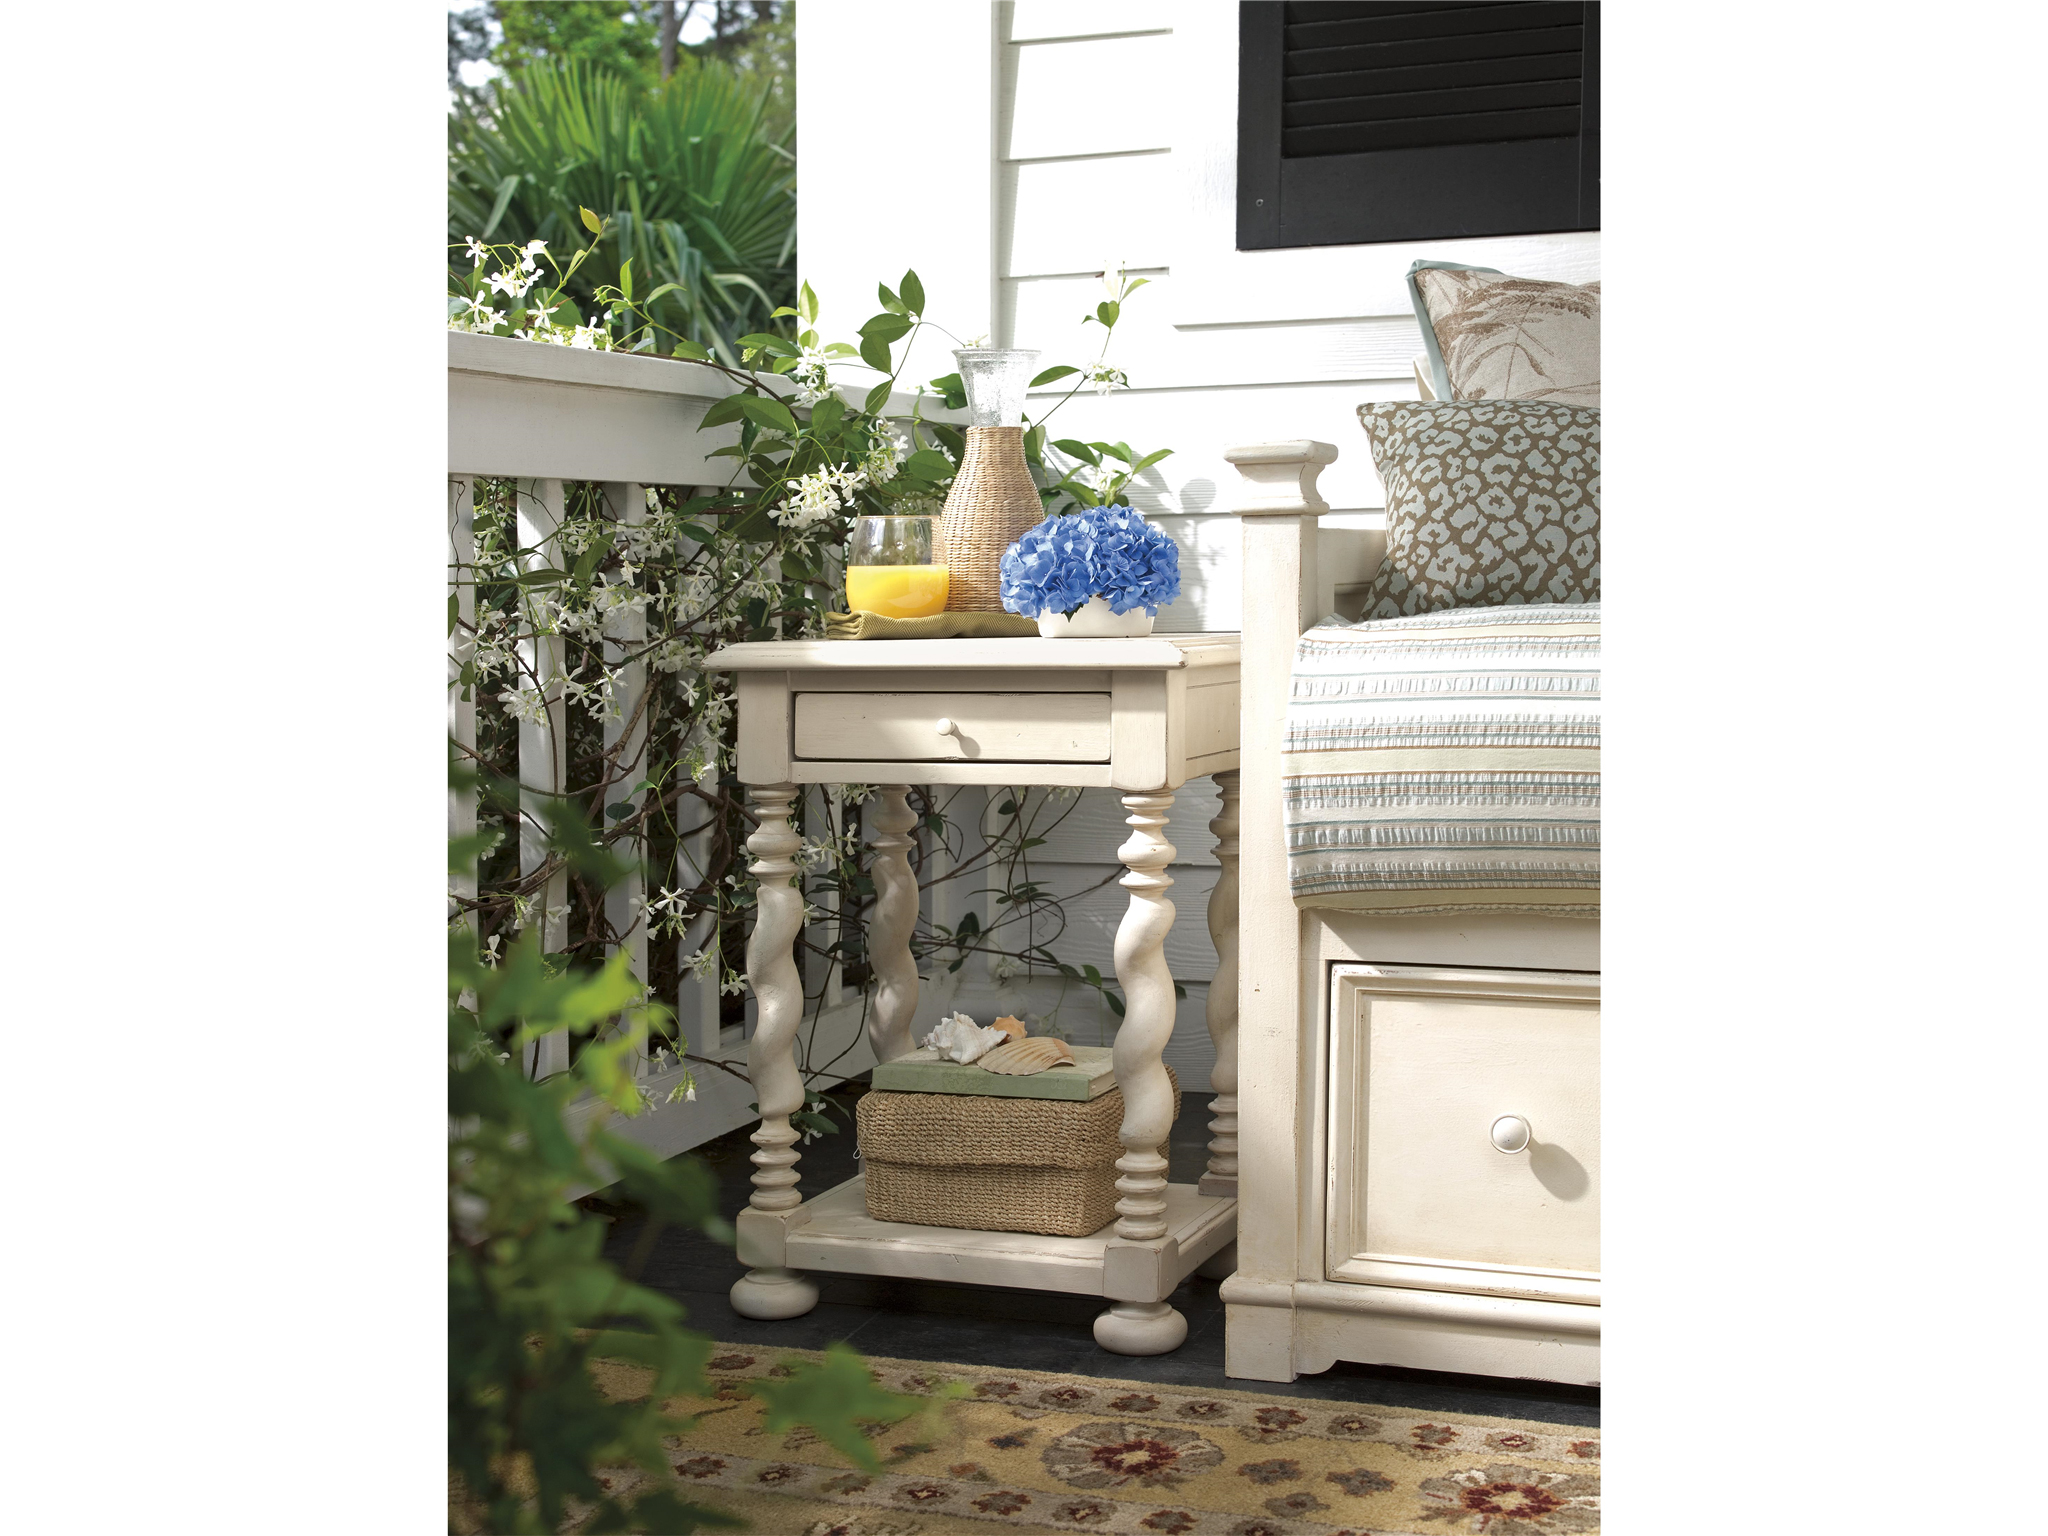 universal furniture accent tables end paula deen home table with built power strip dog crates that look like elephant over chair carolina panthers license plate tall bedside